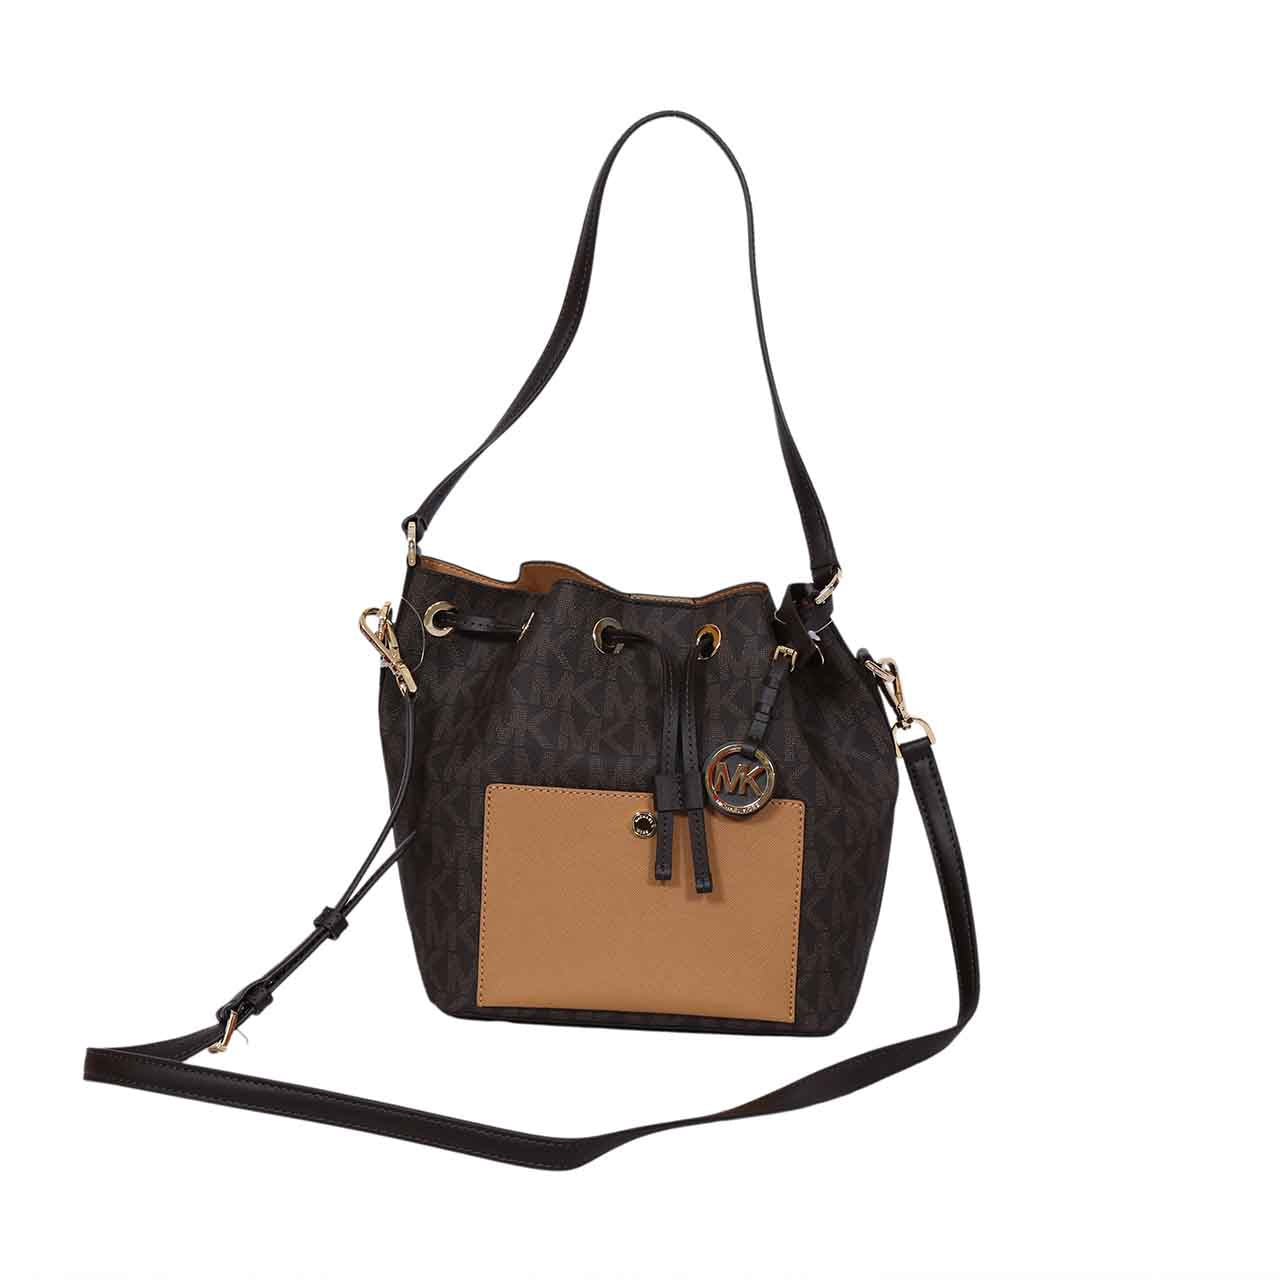 MICHAEL KORS MEDIUM 'GREENWICH' BUCKET BAG